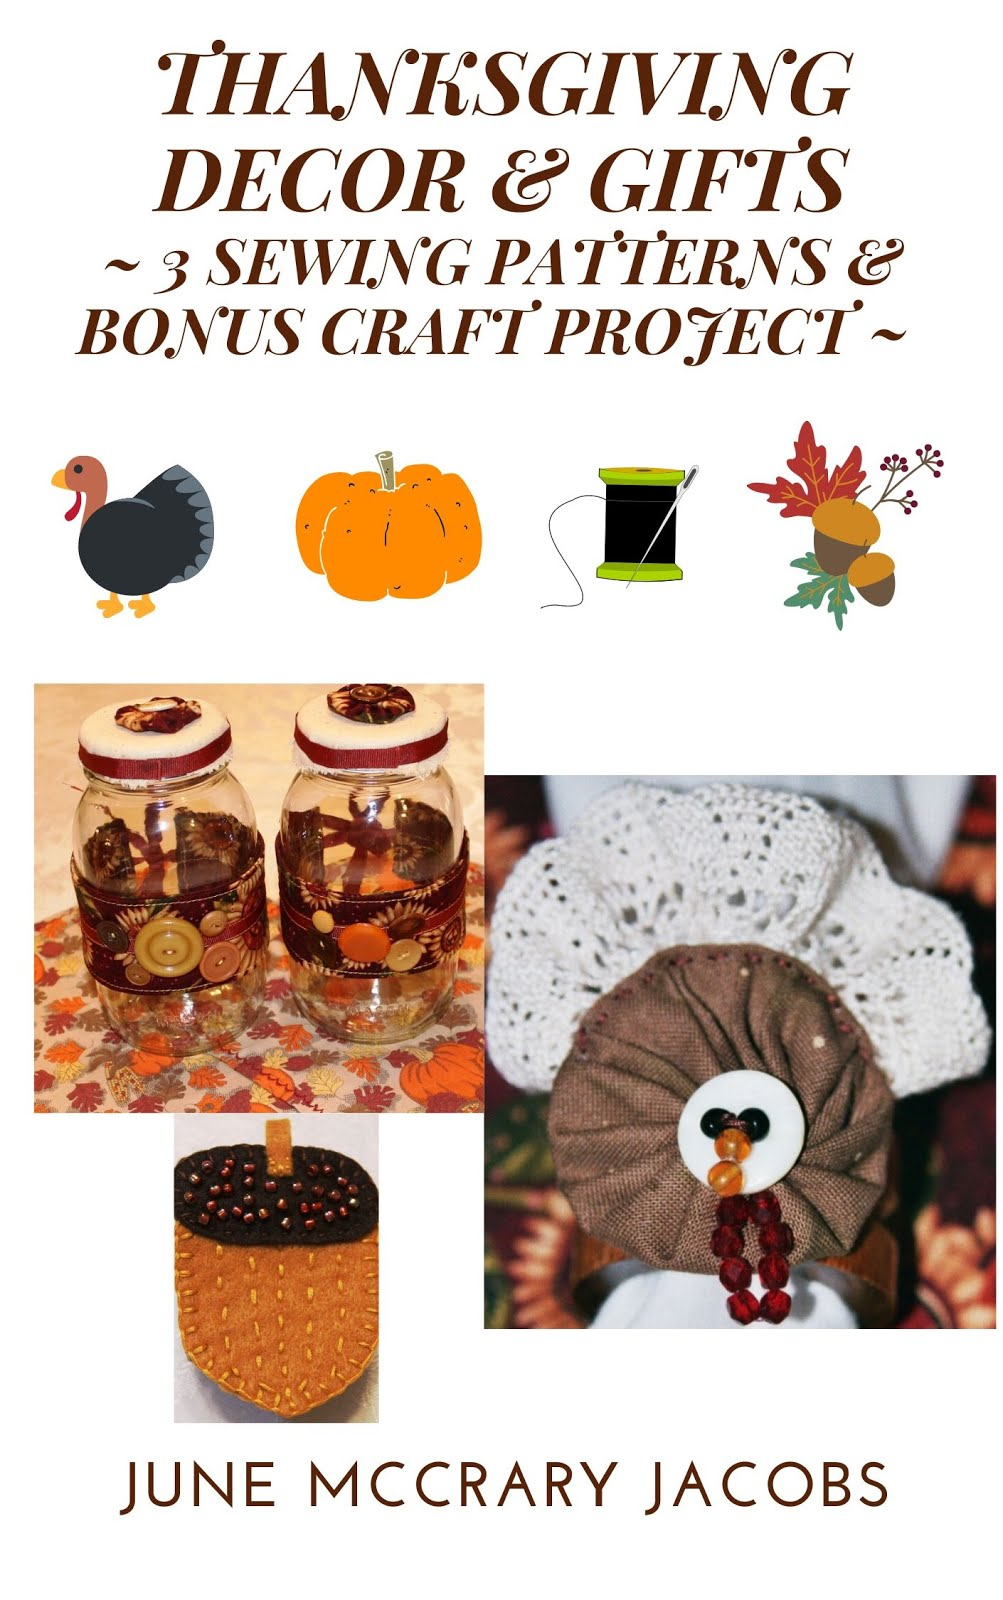 FIND 'THANKSGIVING DECOR & GIFTS ~ 3 SEWING PATTERNS & BONUS CRAFT PROJECT' ON AMAZON.